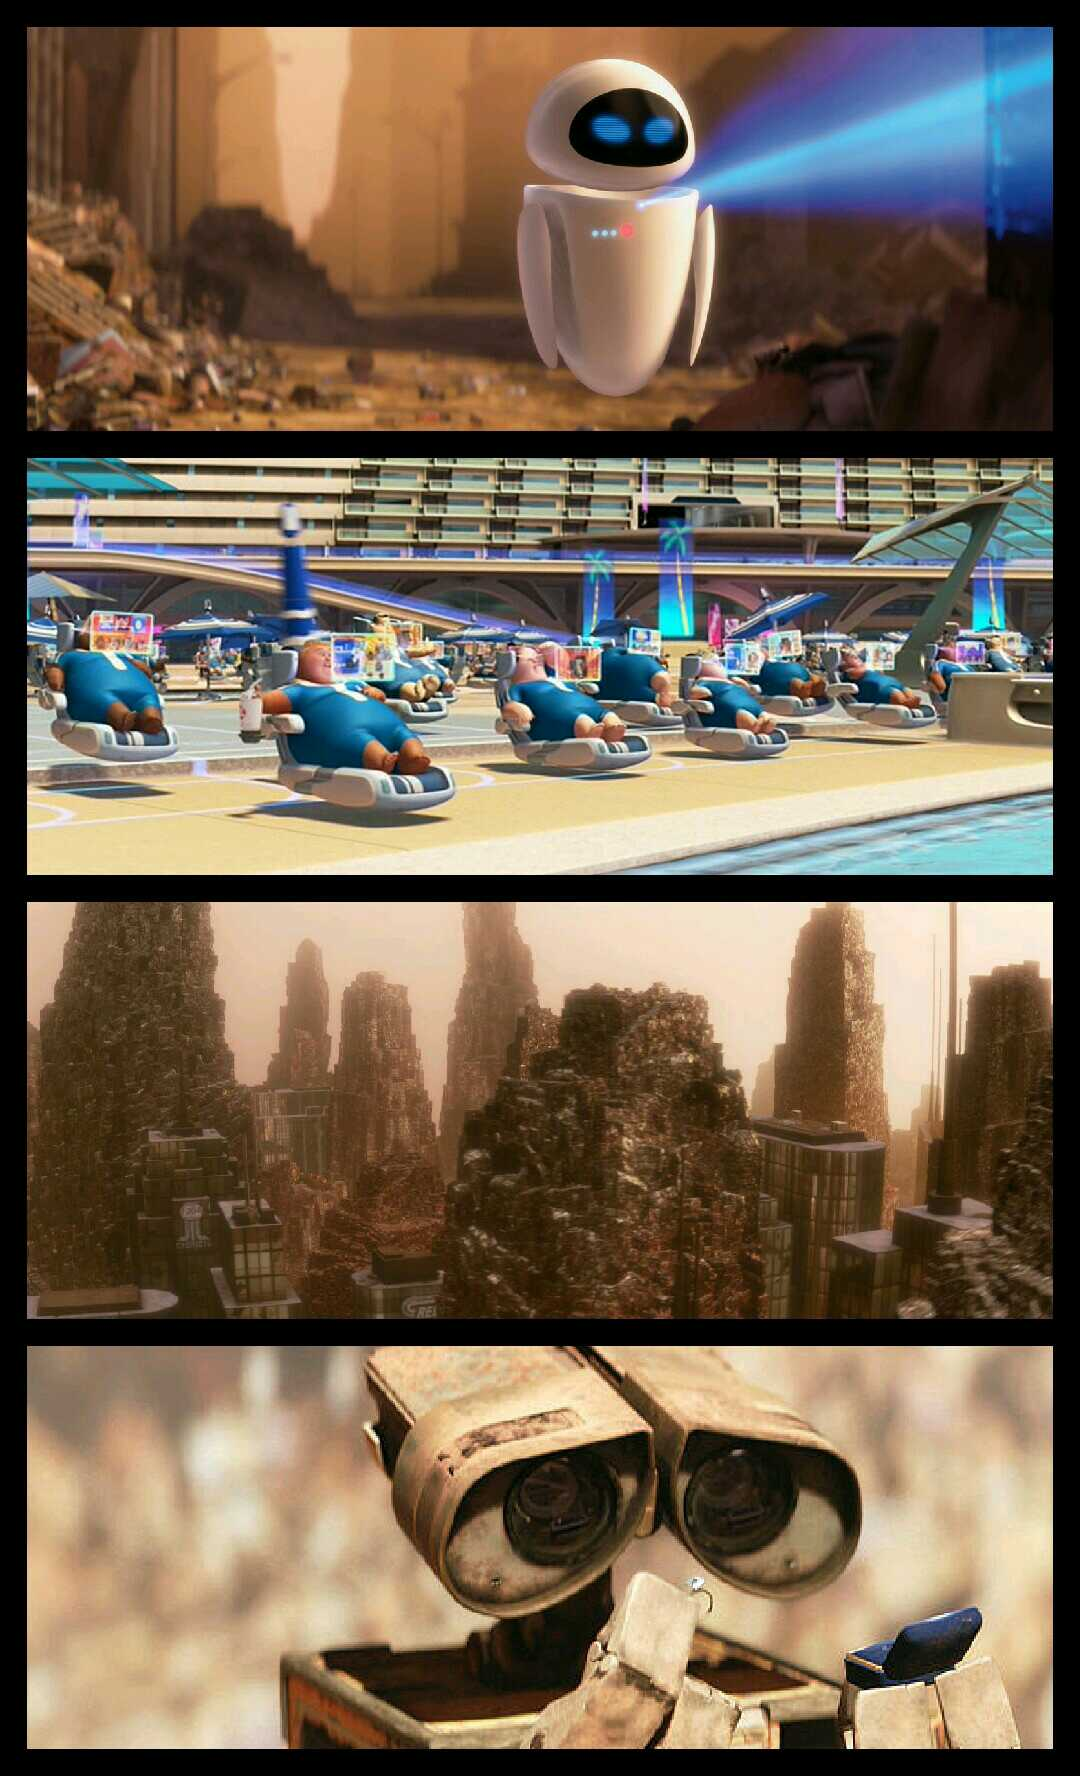 Satire Examples In The Movie Wall E